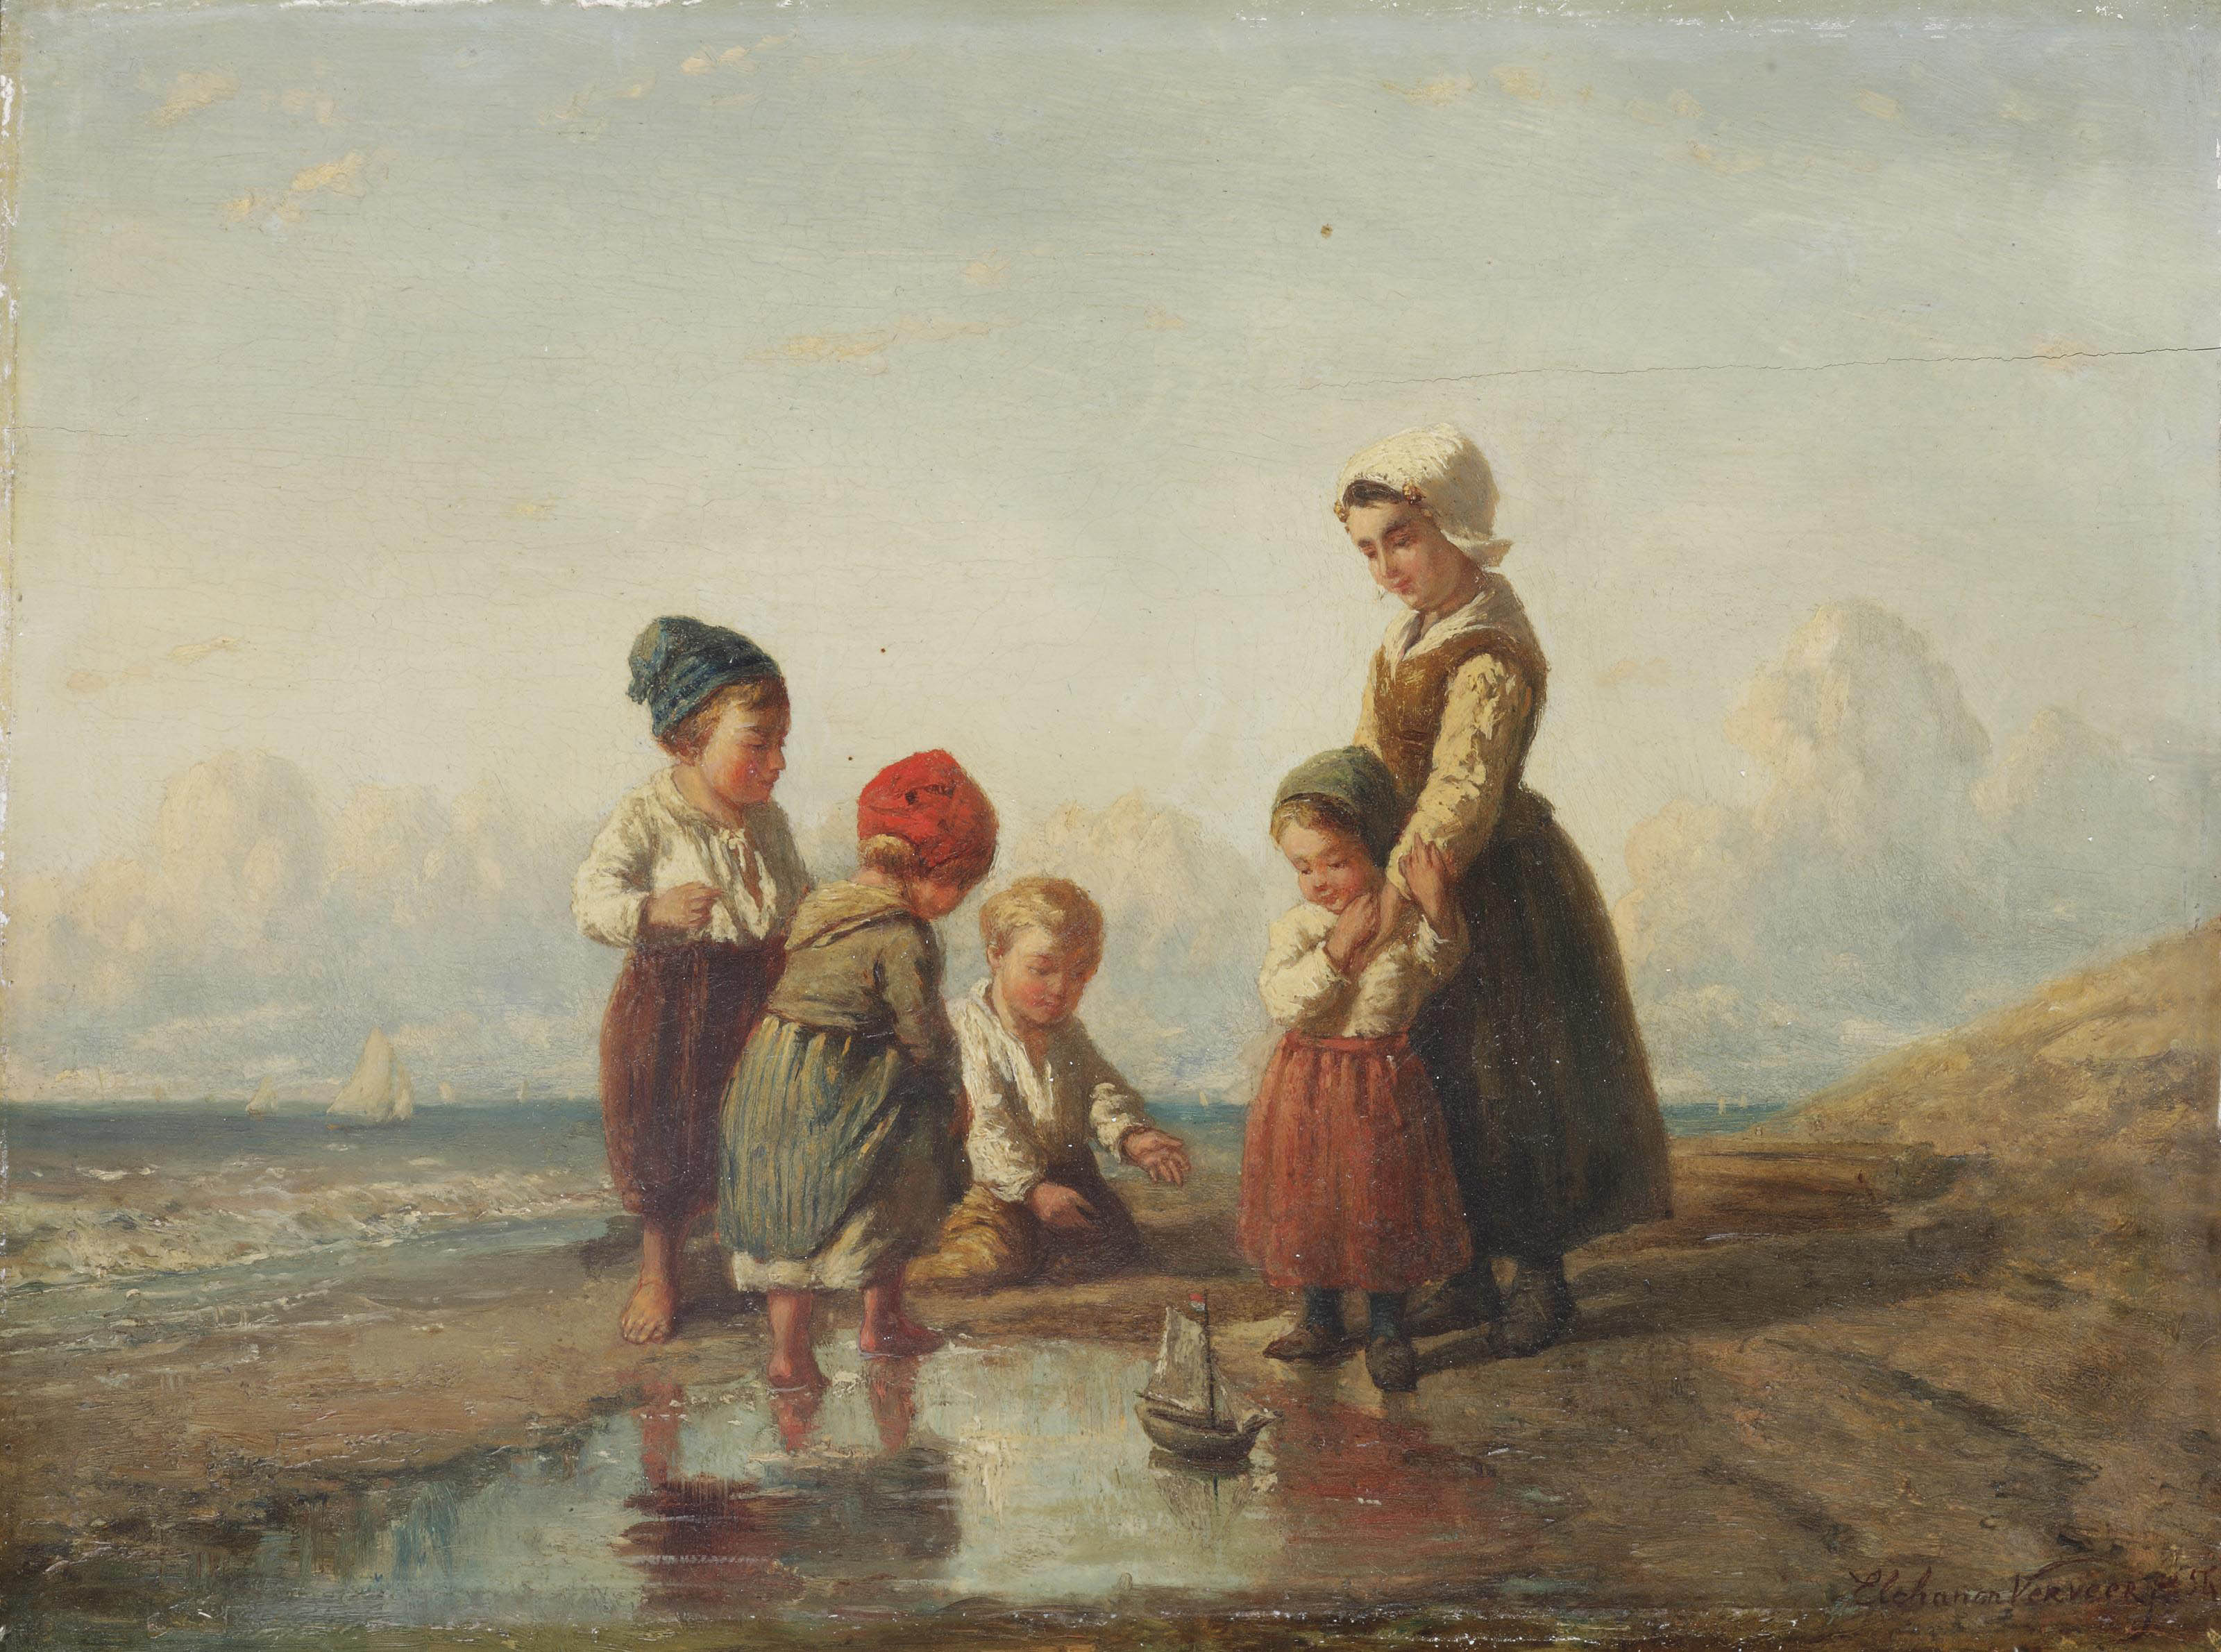 Children playing with a boat on the beach